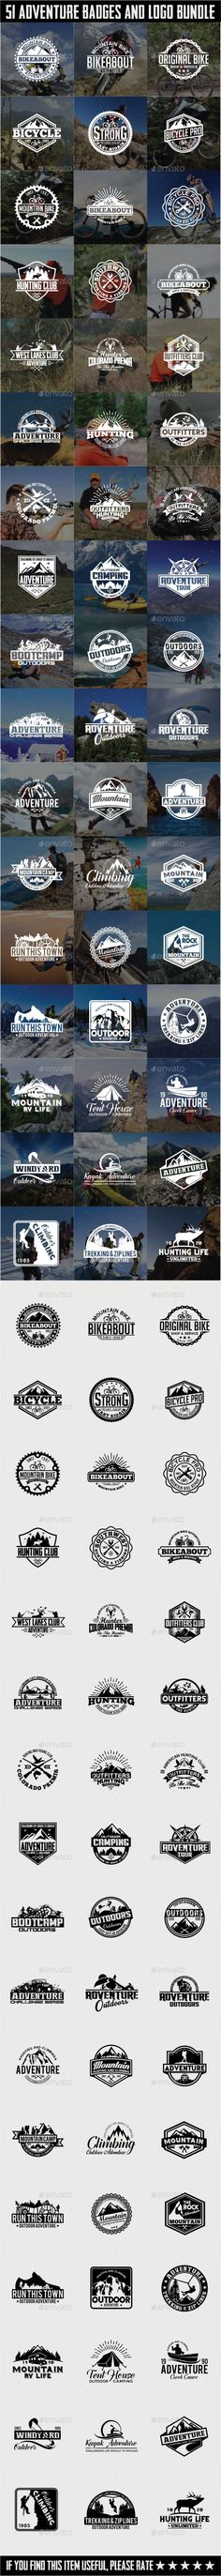 51 Adventure Badges and Logos Bundle Template #design Download: http://graphicriver.net/item/51-adventure-badges-and-logos-bundle/12395442?ref=ksioks